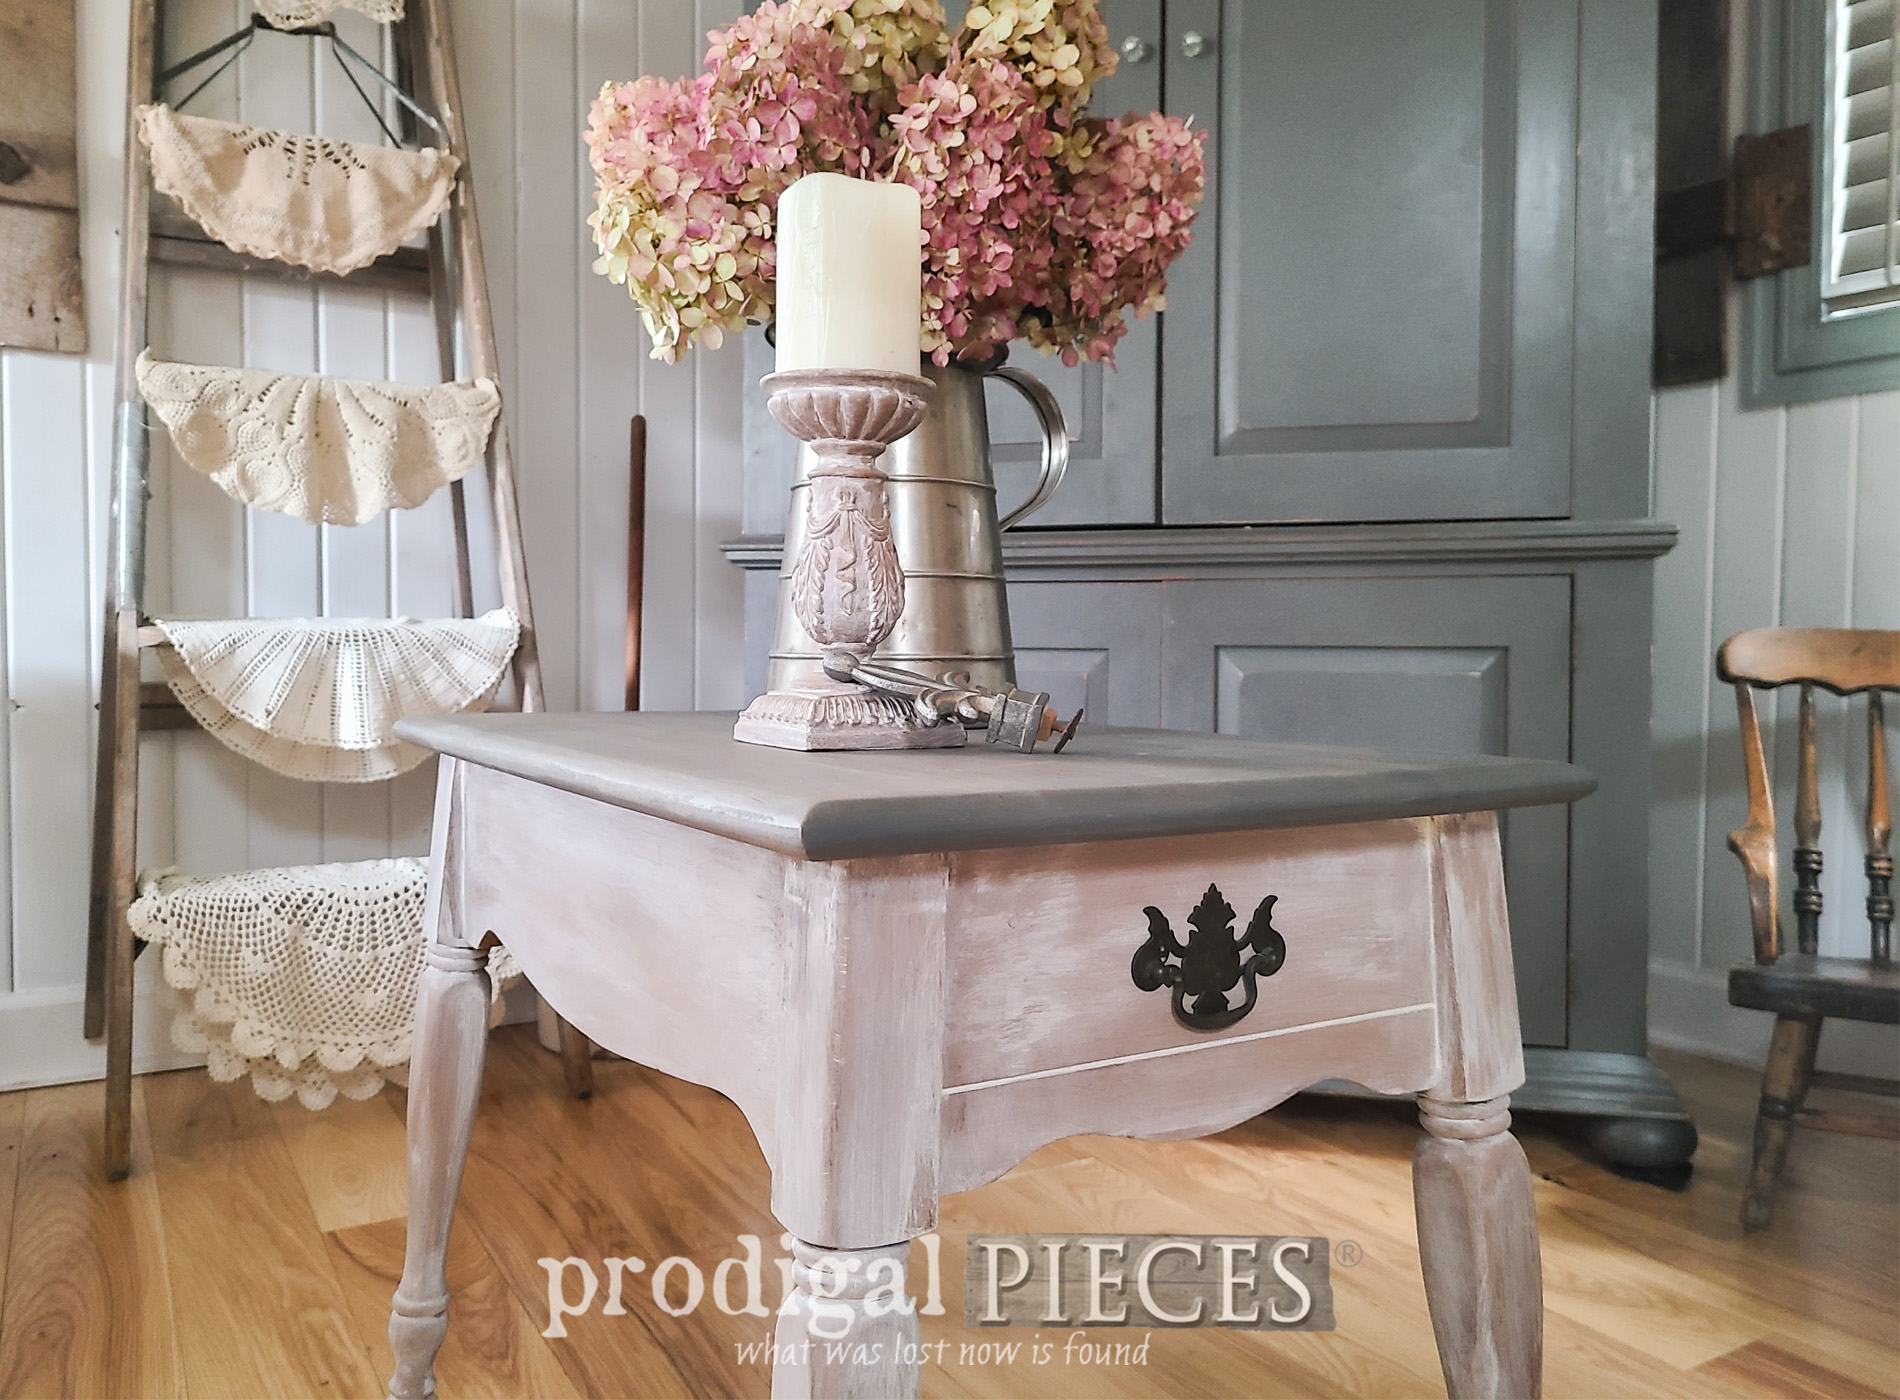 Featured Farmhouse Side Table Makeover by Larissa of Prodigal Pieces | prodigalpieces.com #prodigalpieces #farmhouse #diy #furniture #vintage